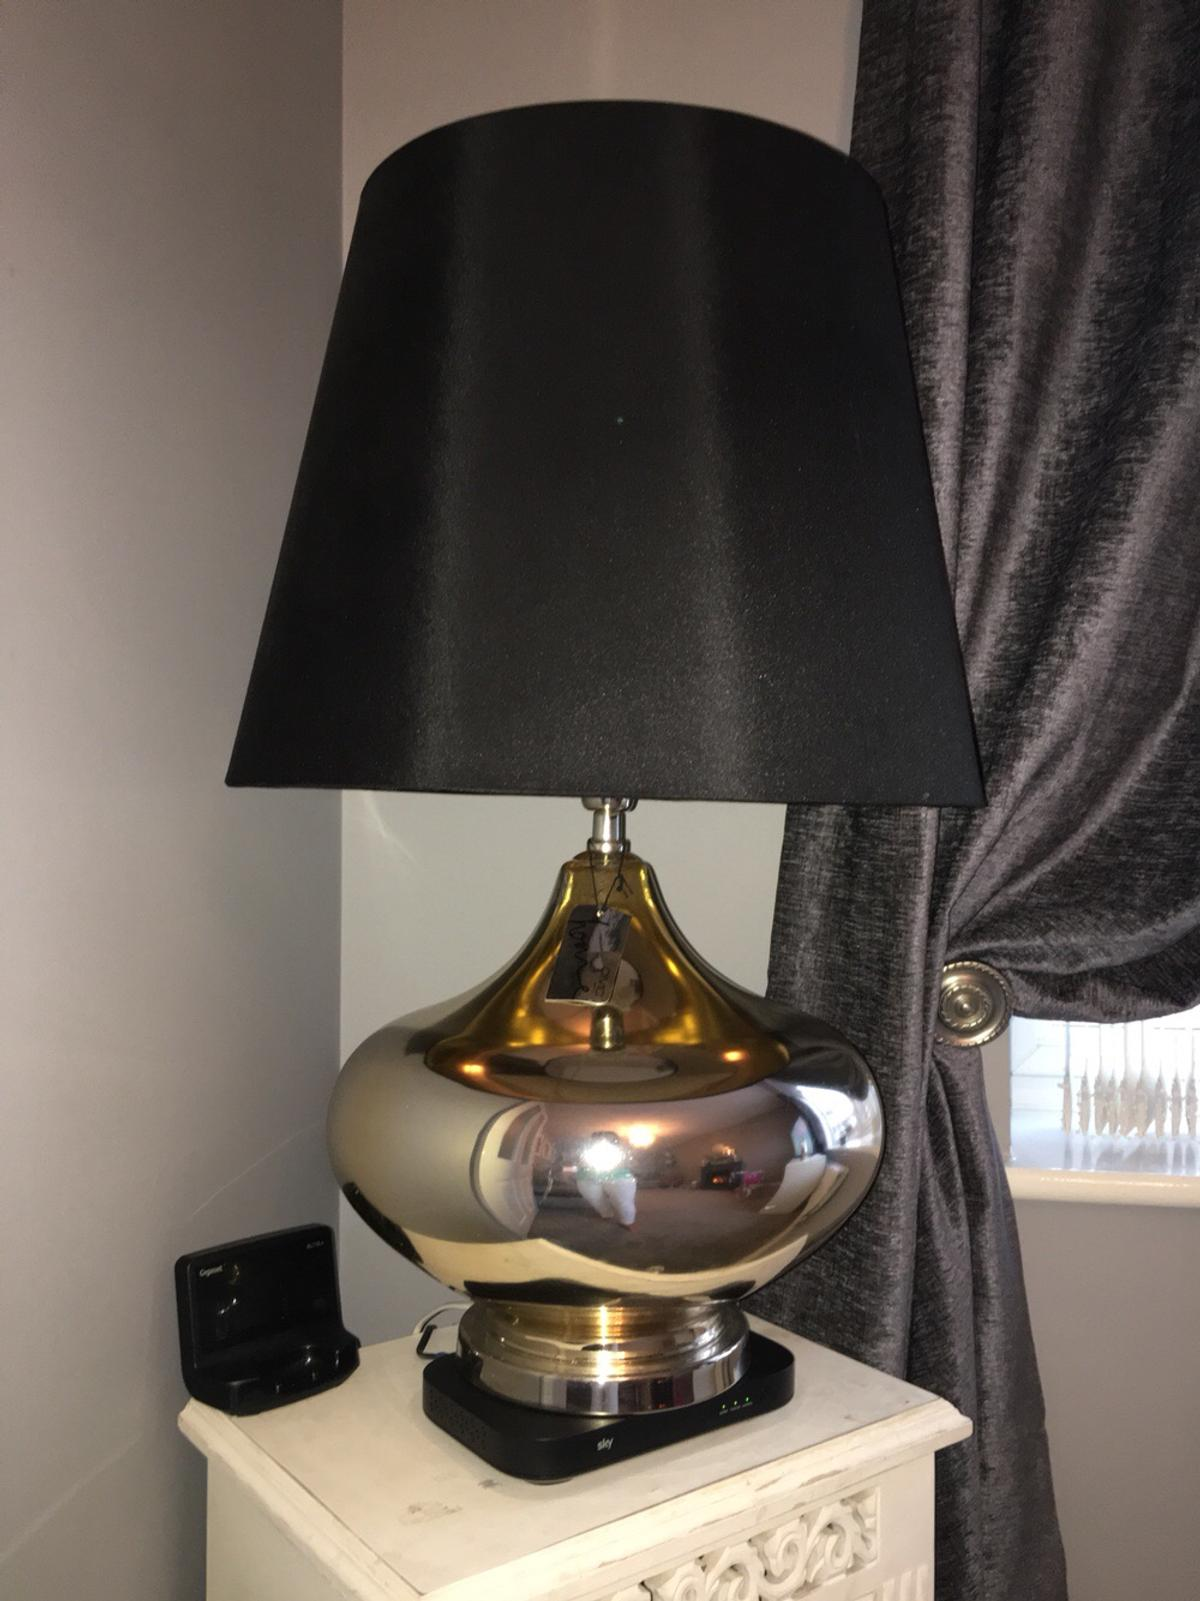 Picture of: Large Statement Lamp In Ts10 Redcar For 40 00 For Sale Shpock